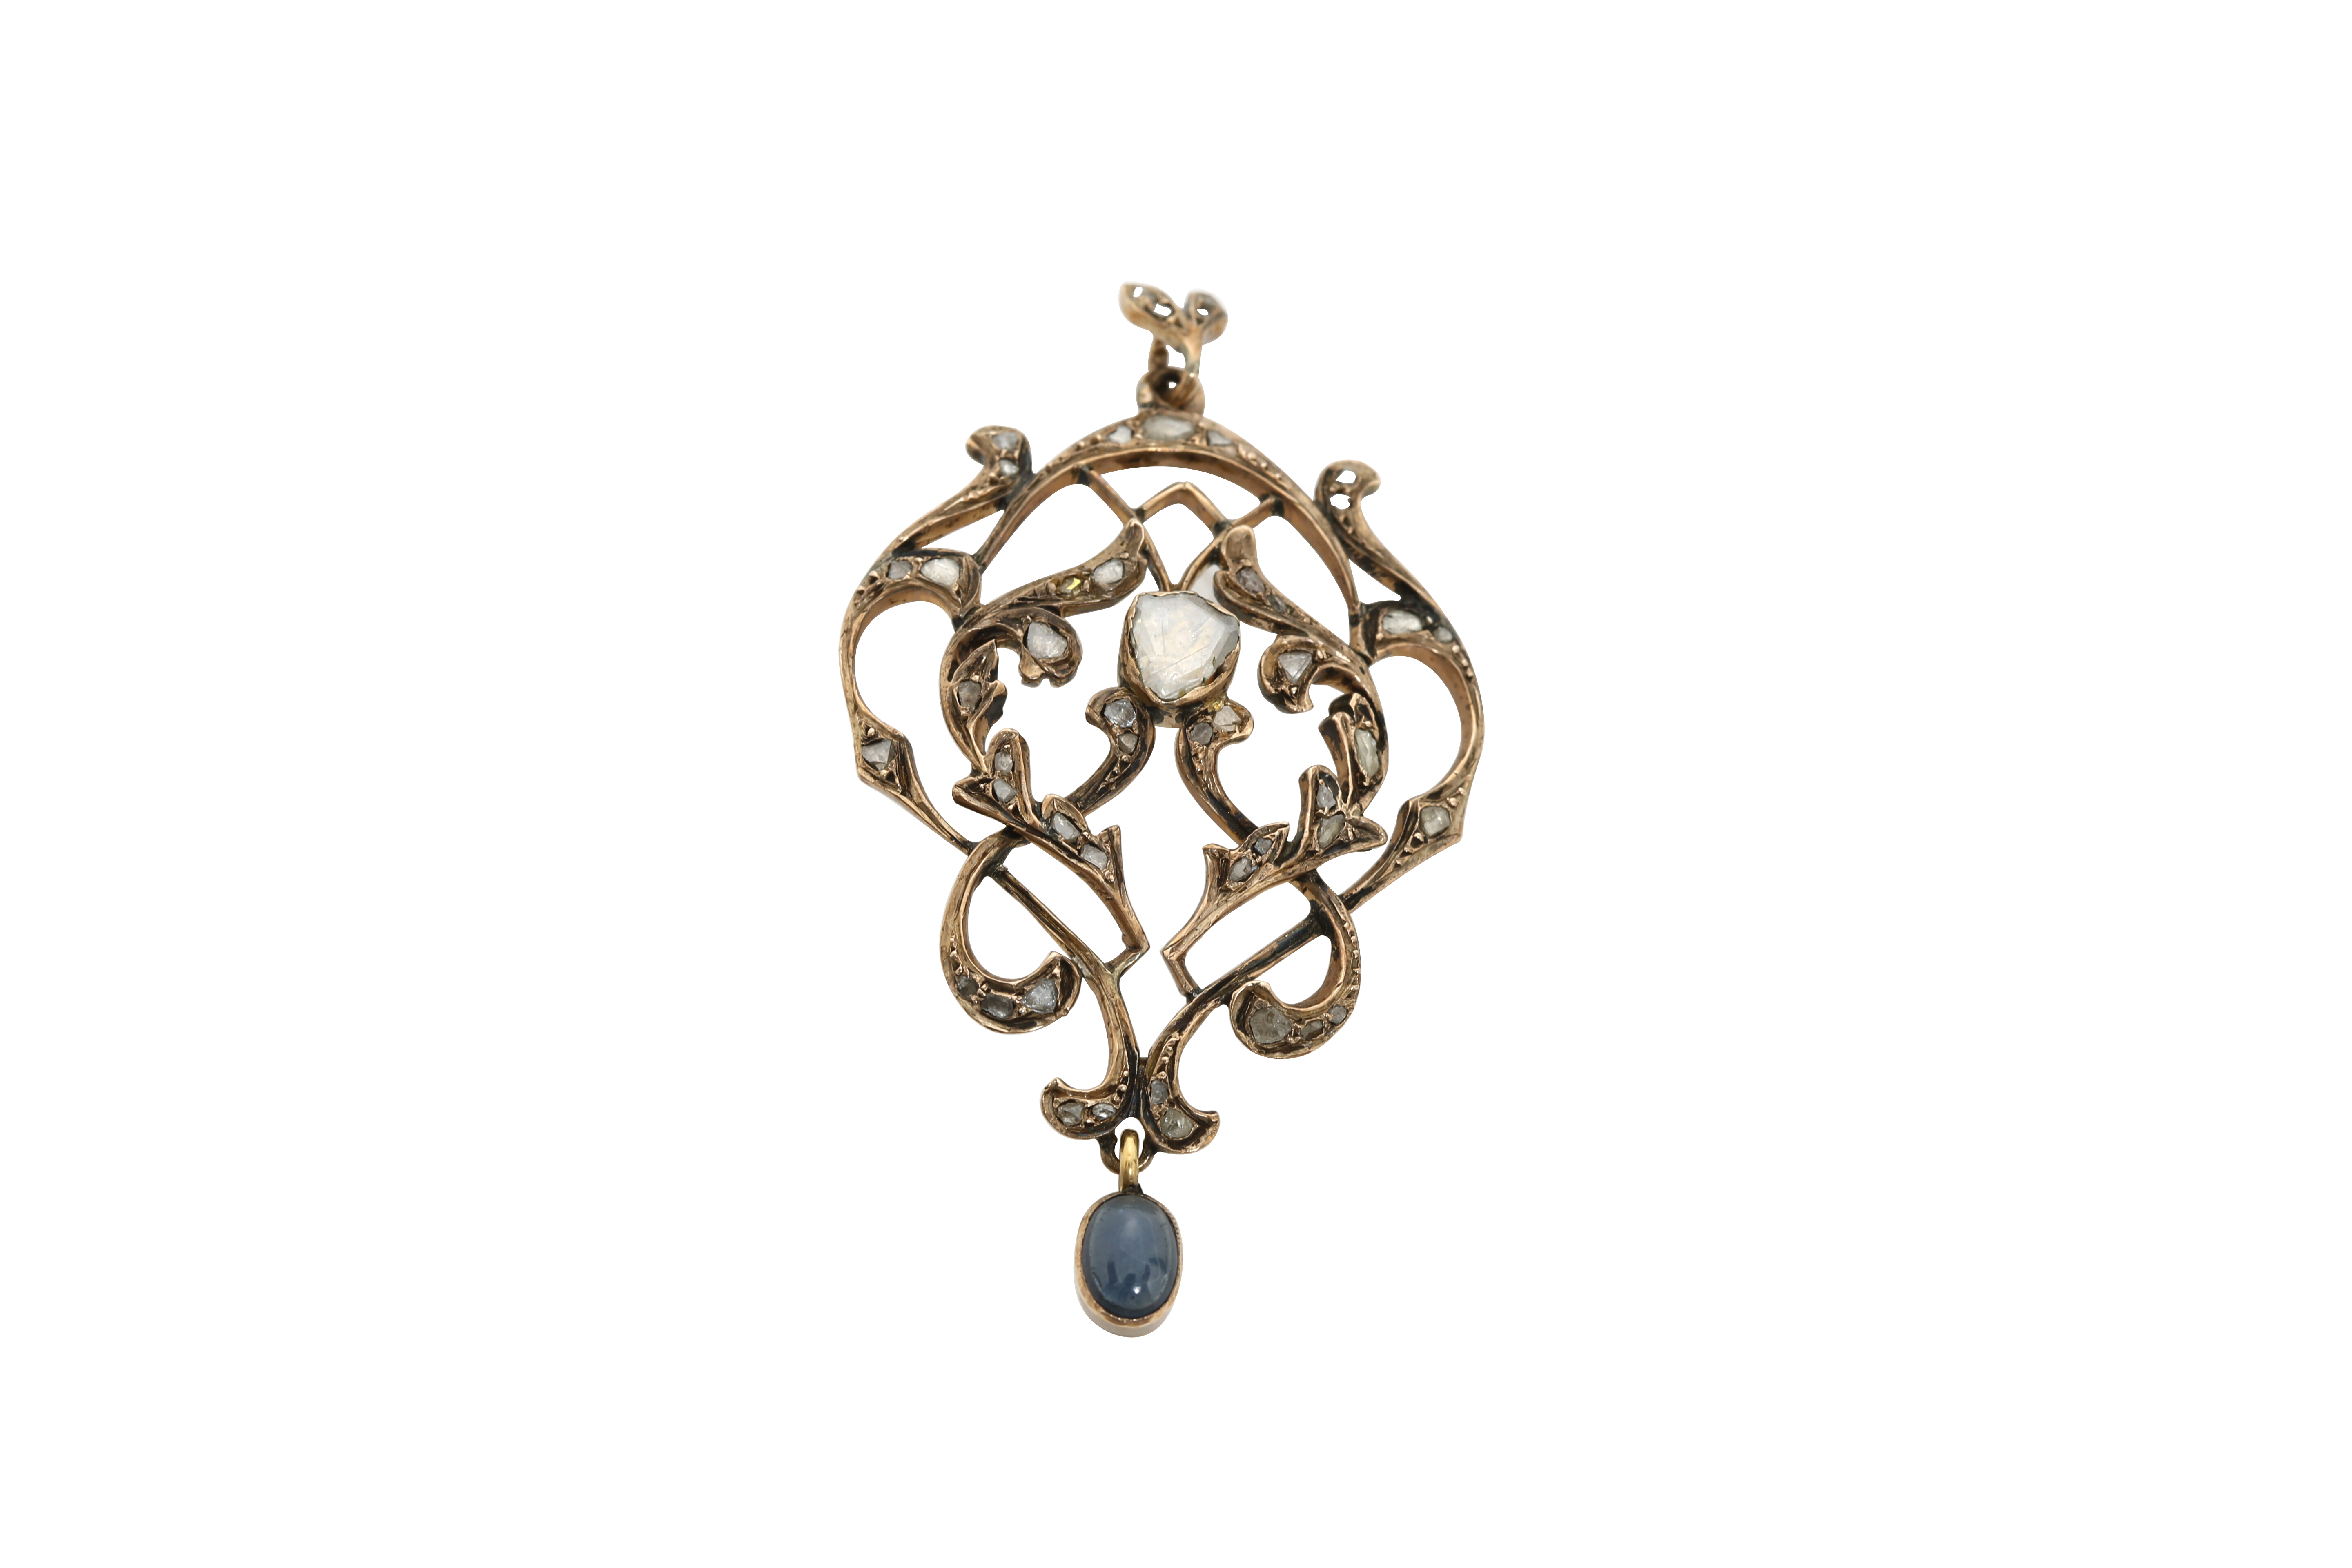 A circa 1900 Constantinople gold pendant. Approx: 7 gr. - Image 3 of 3